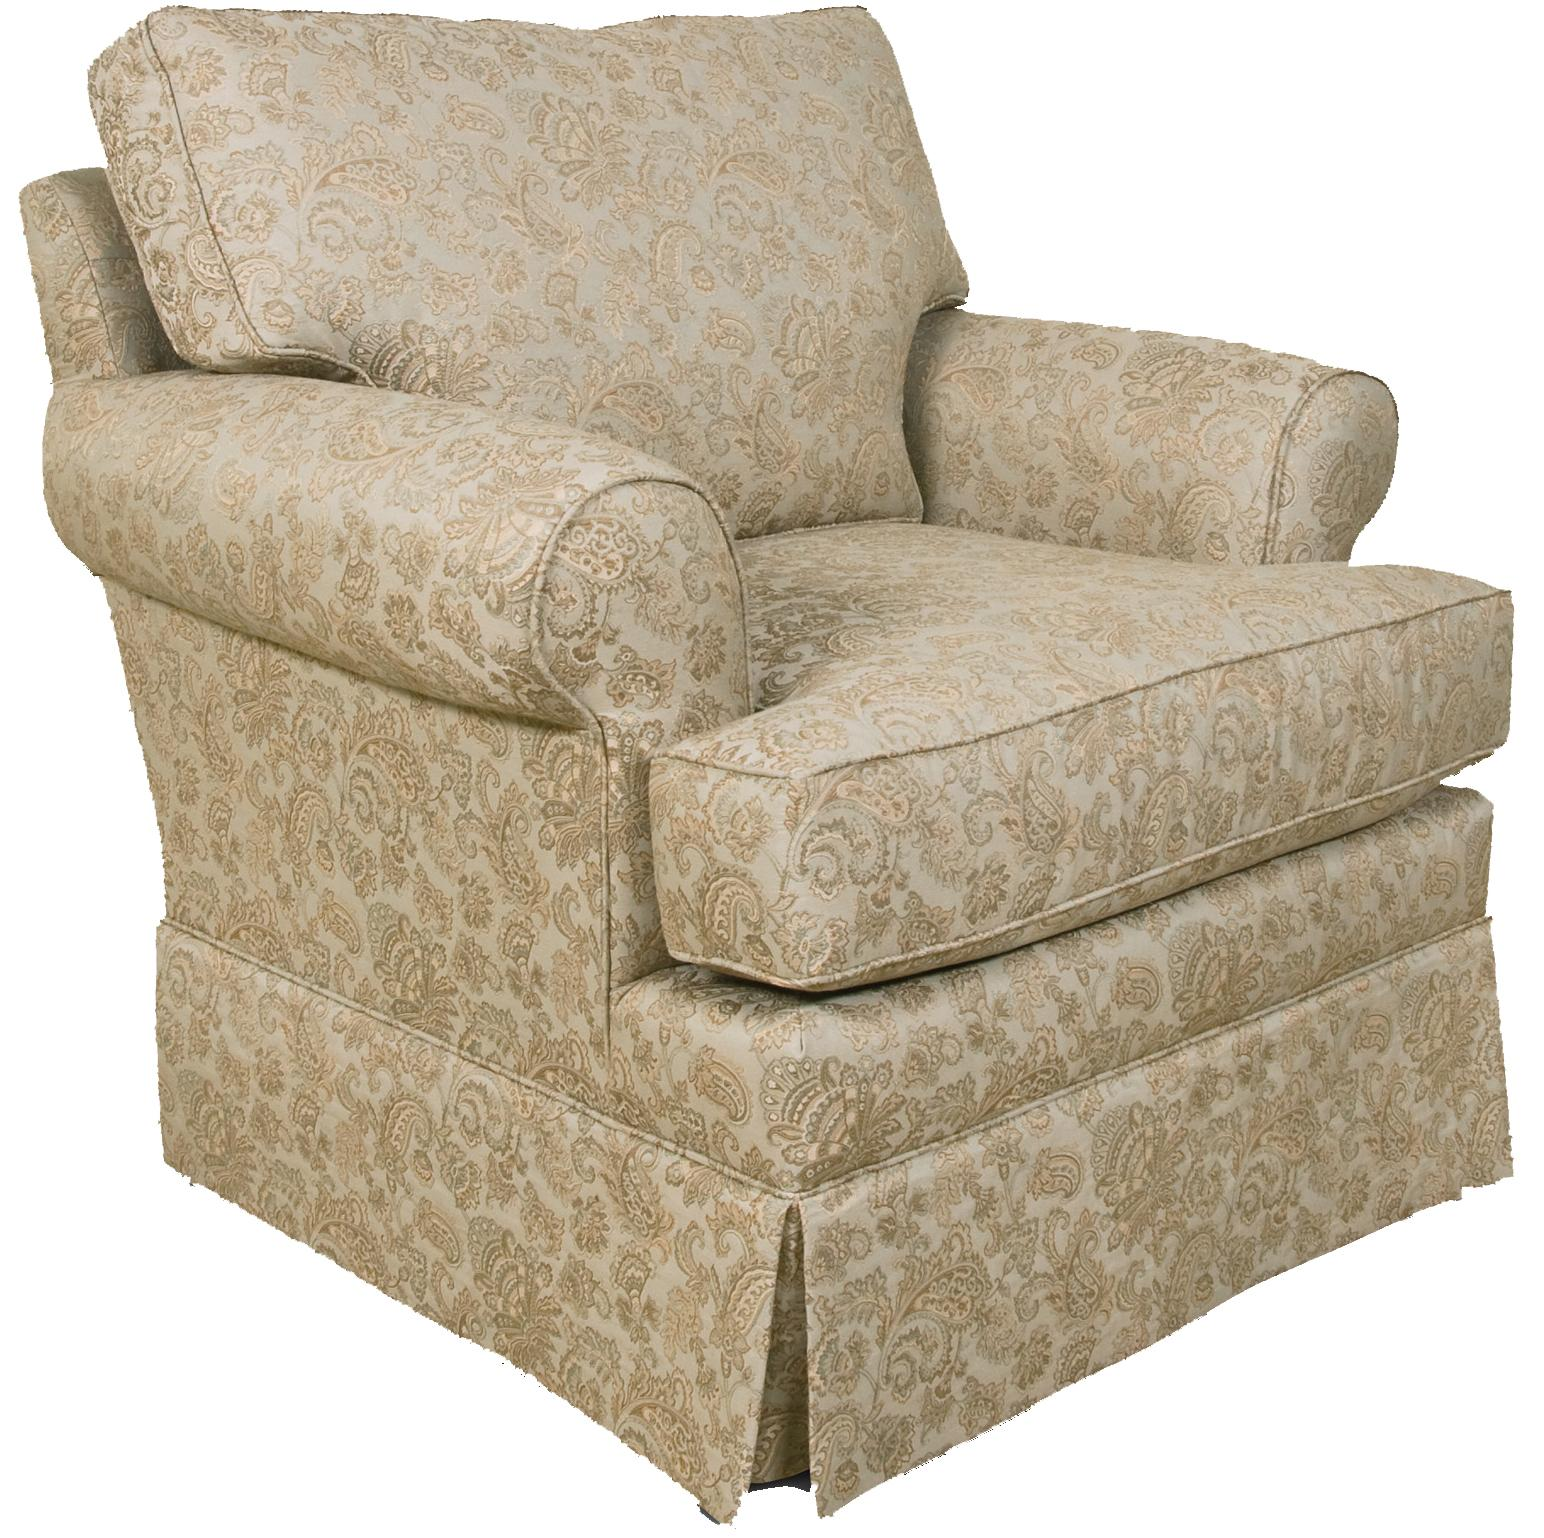 England William Traditional Chair - Item Number: 5334